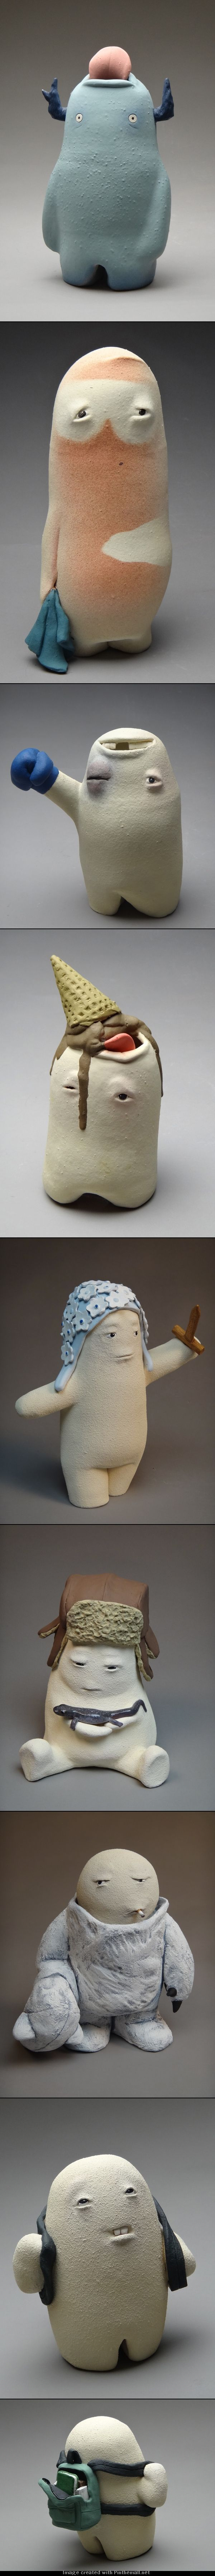 Sculpting by Katherine Moraller